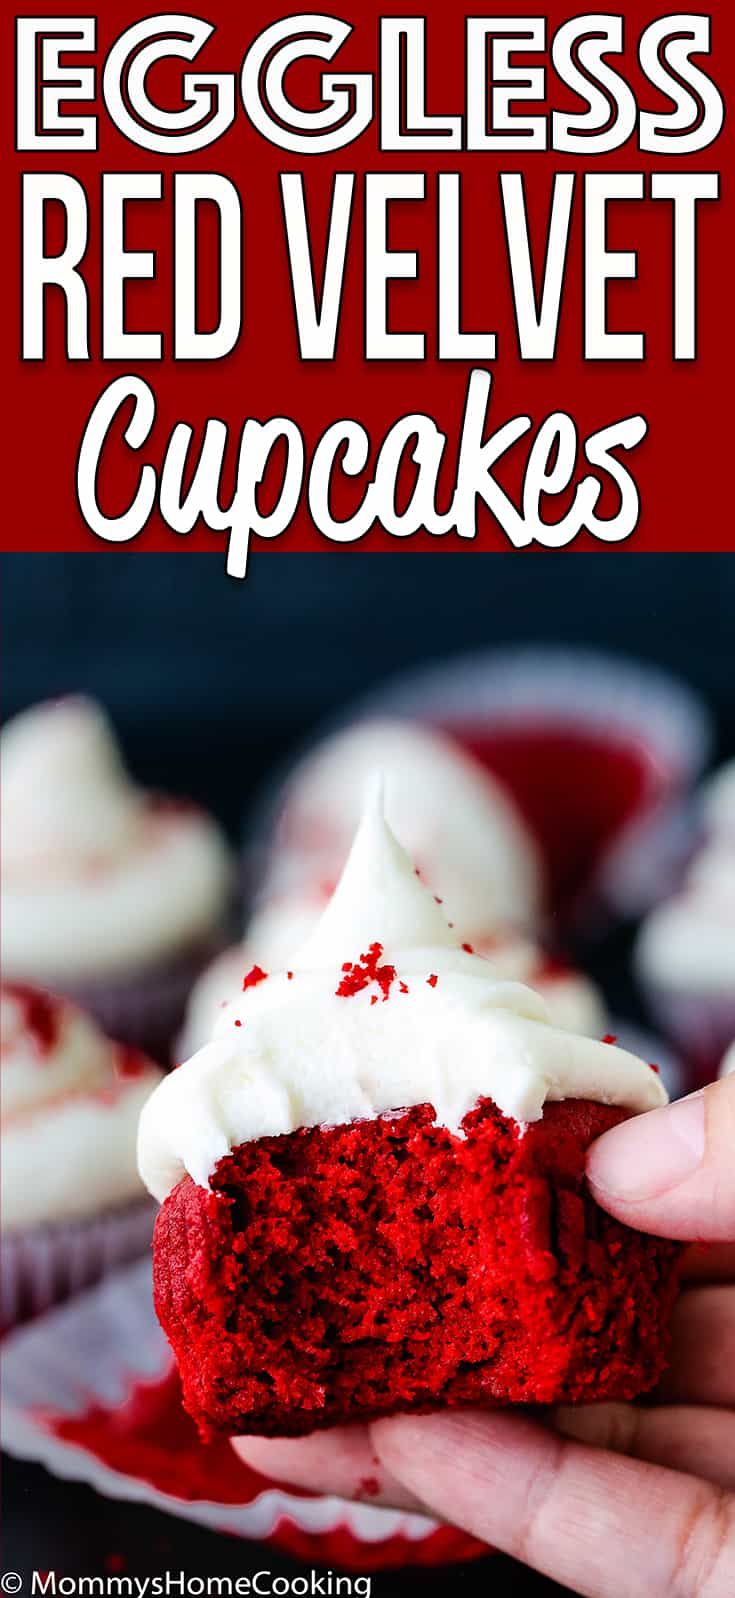 These Easy Eggless Red Velvet Cupcakes are tender, light, moist and delicious all at once!! They are super easy to whip up for your next get-together.Perfect for crowded birthday parties and school celebrations. #recipe #egglessbaking #eggfree #eggless #cupcake #redvelvet #valentines #desserts